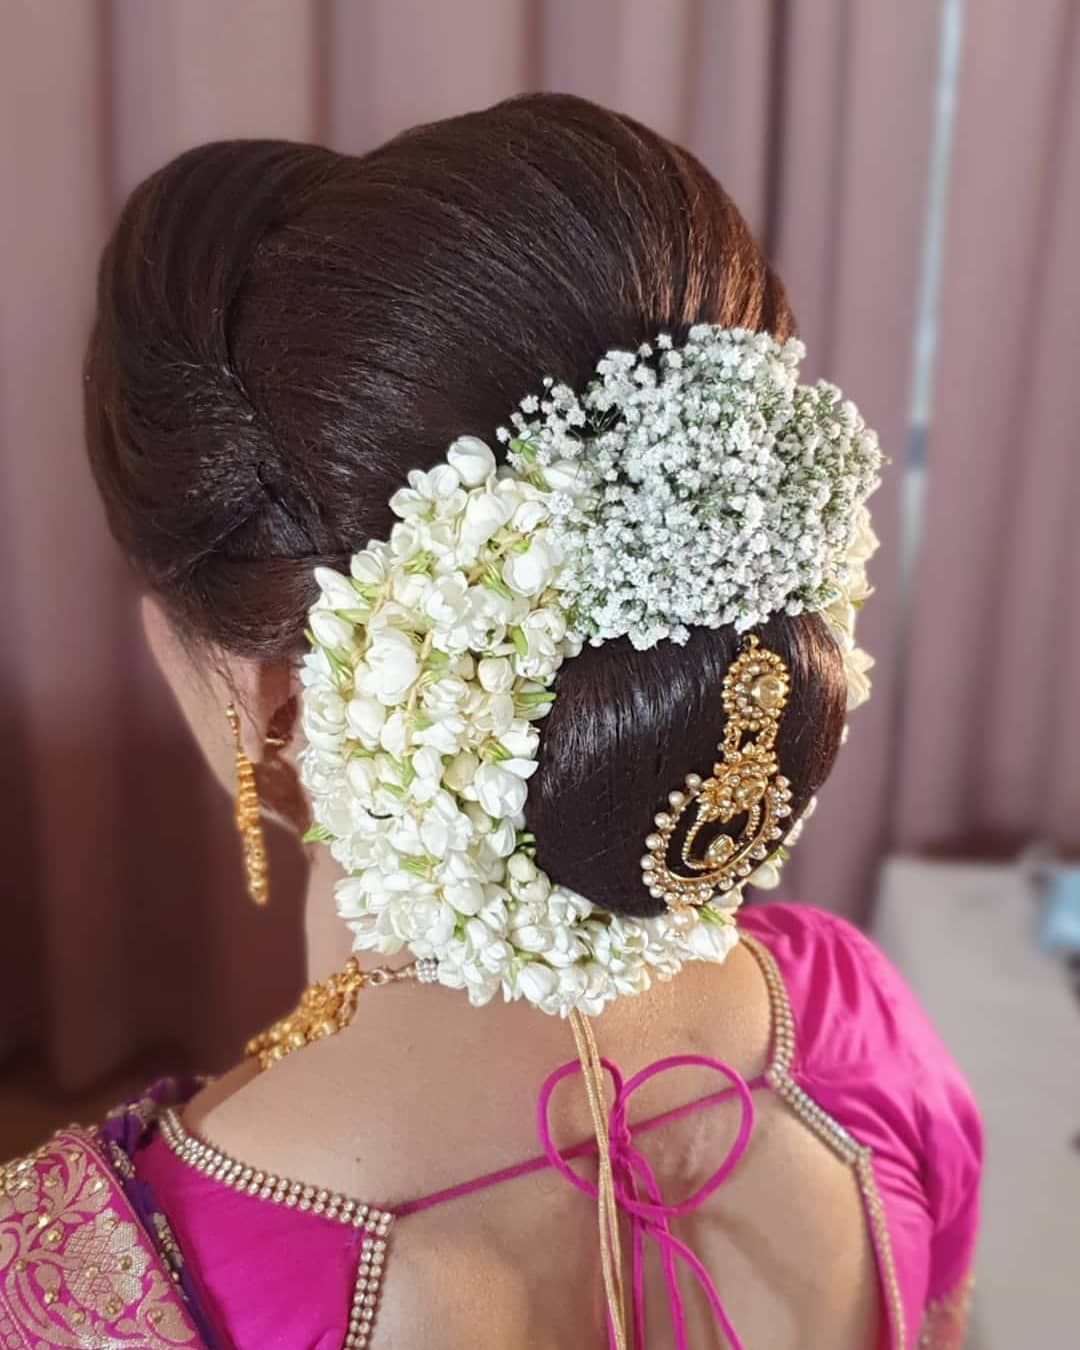 Wedding Kondai Hairstyle: C L A S S I C 💗 . Book Us For Your Big Day 😊😊😊Whatsapp Now